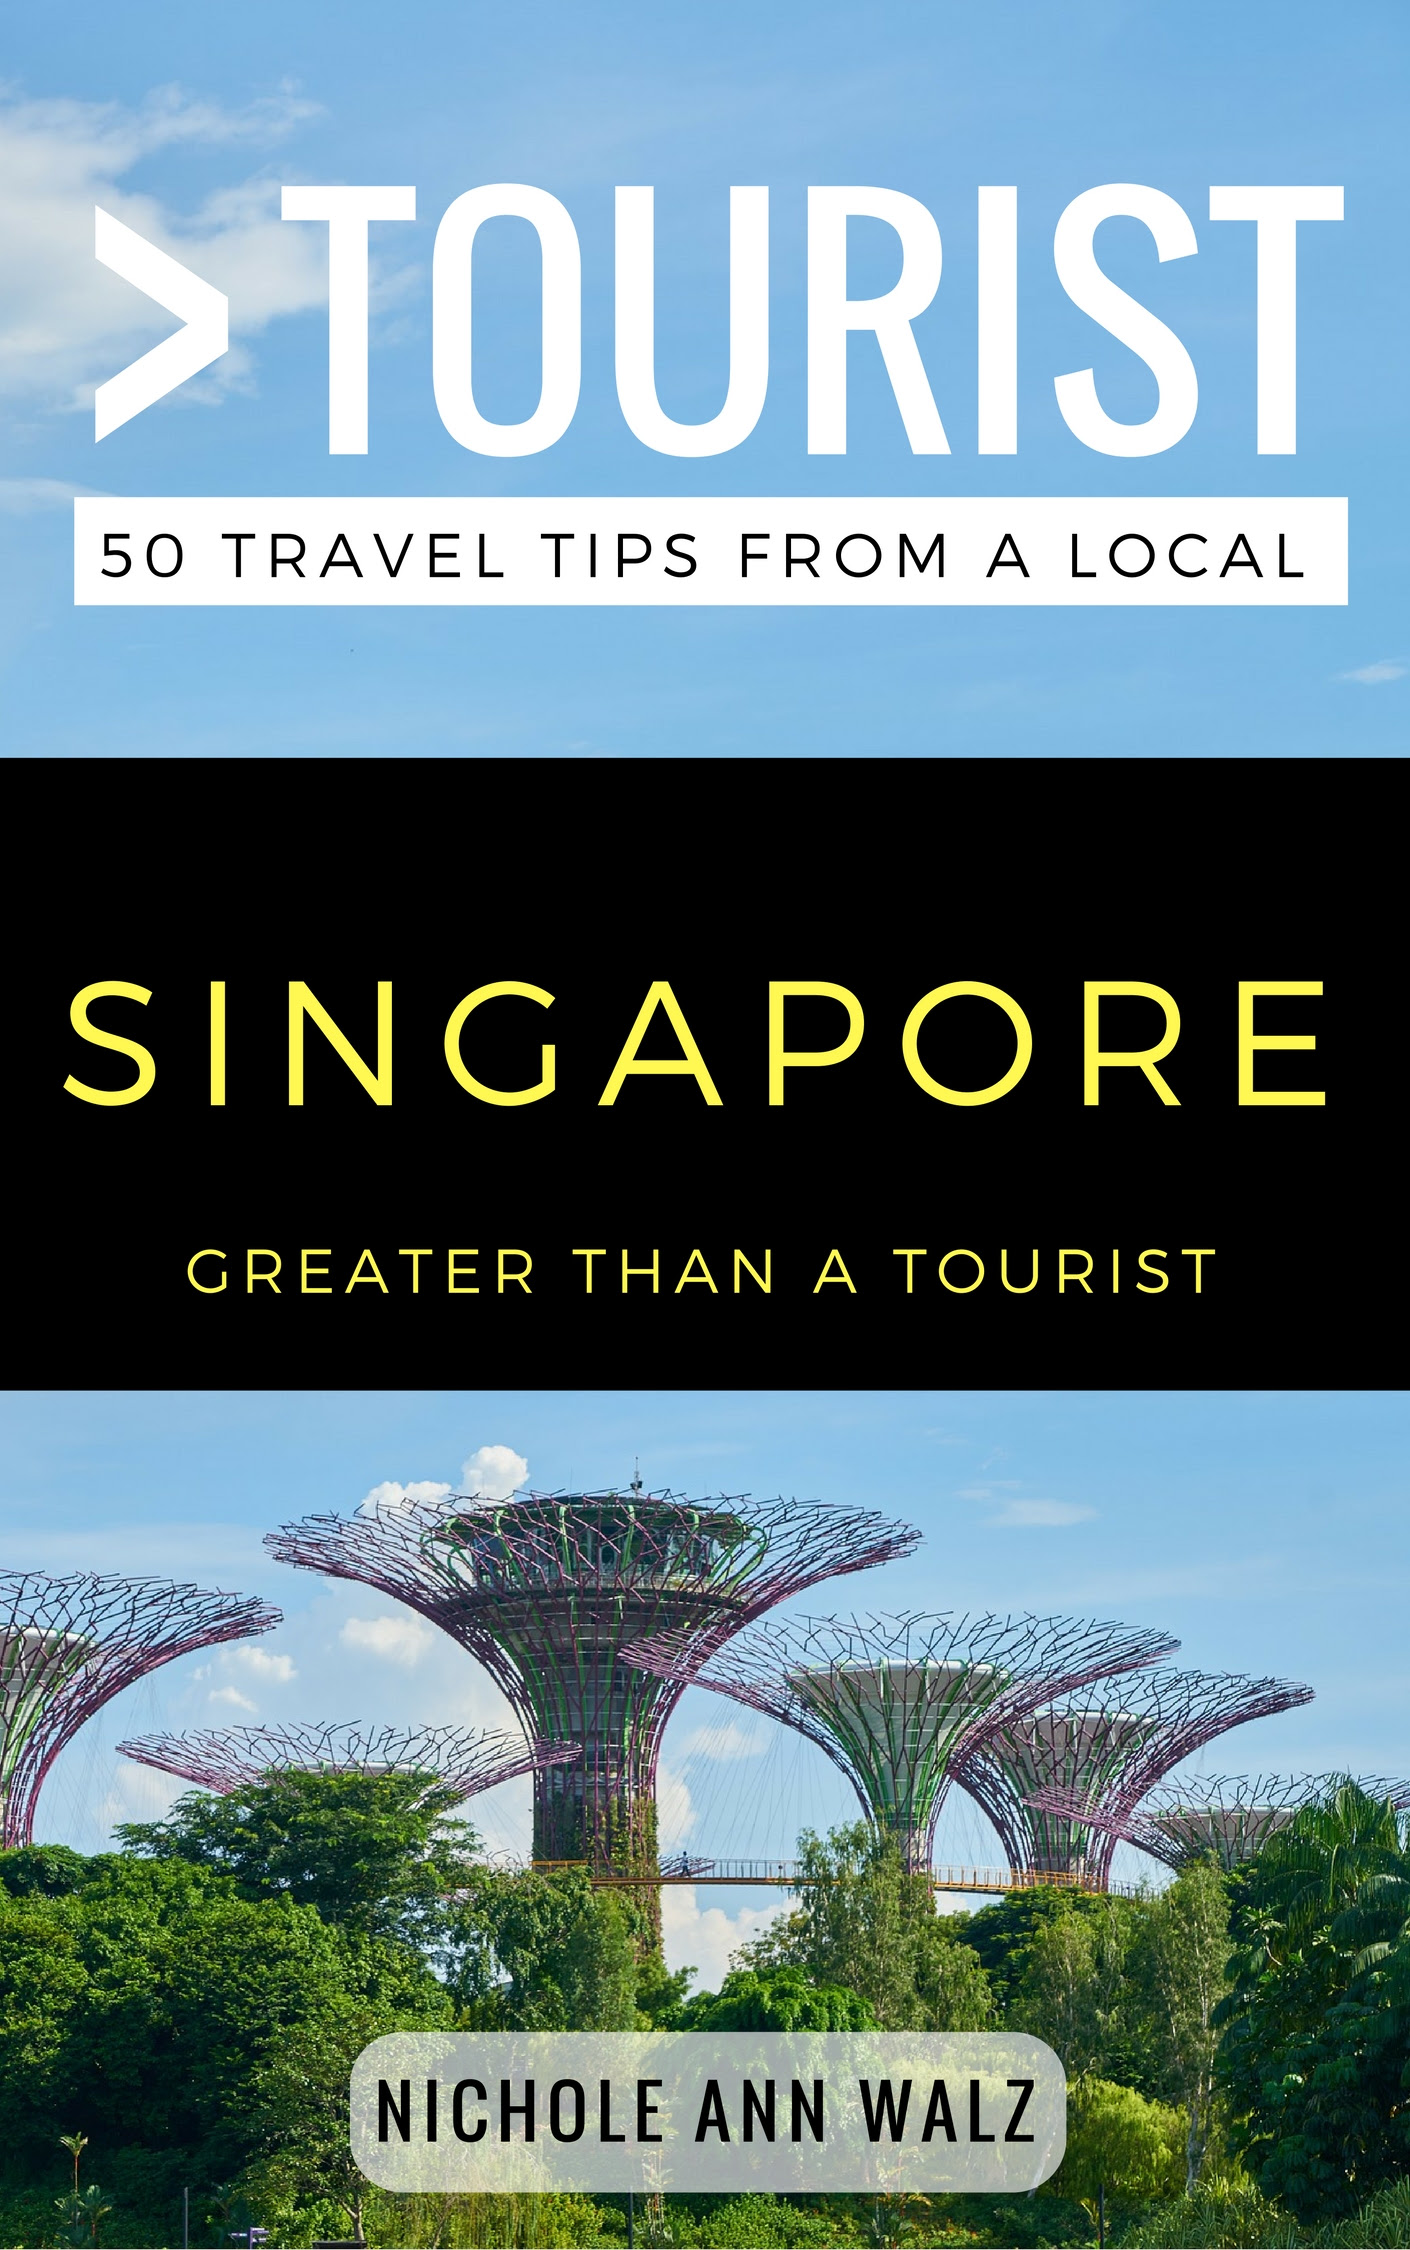 Greater Than A Tourist, Singapore: Nichole Ann Walz